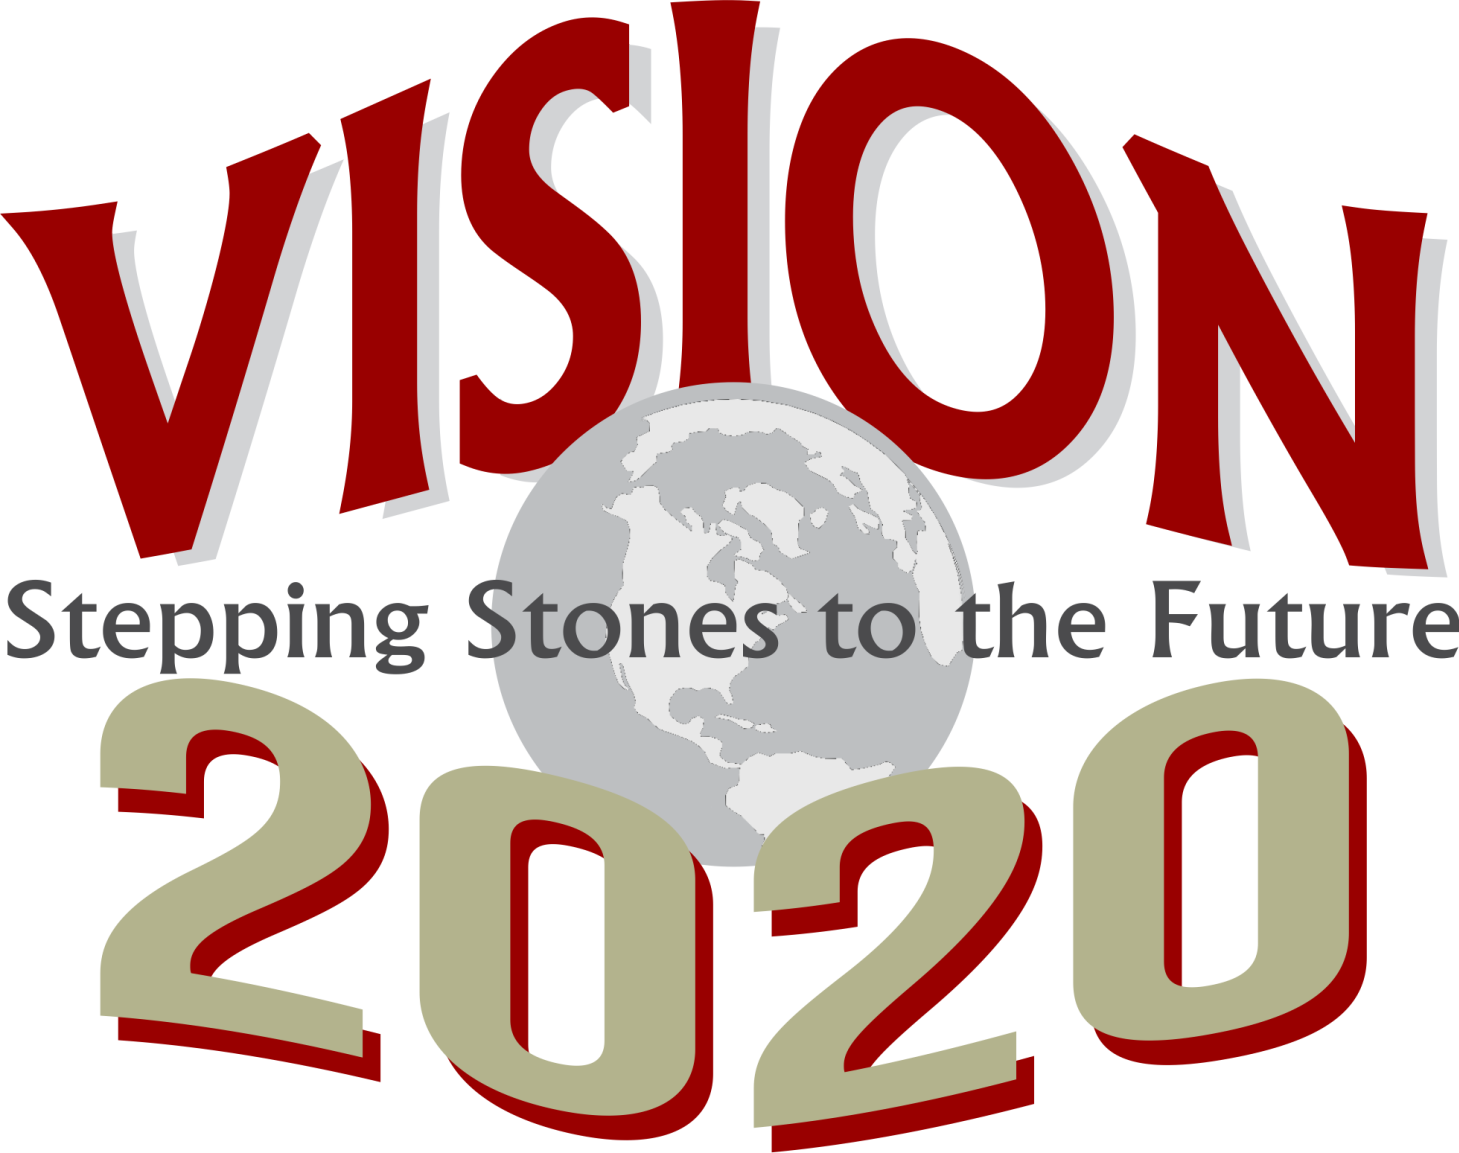 Missions clipart greeter. Vision stepping stones next